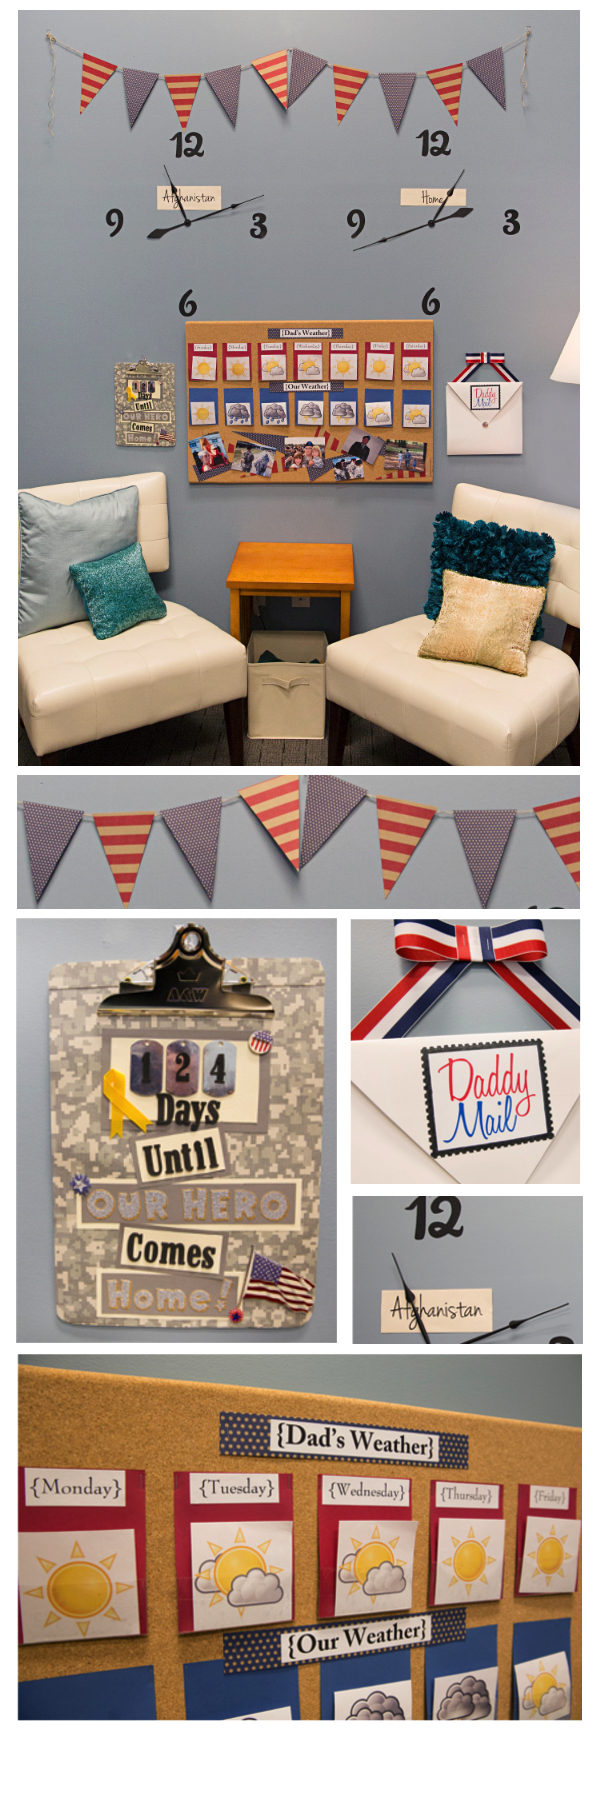 Military families find creative ways to help get through the many days and nights of deployment. One popular way is a deployment wall.